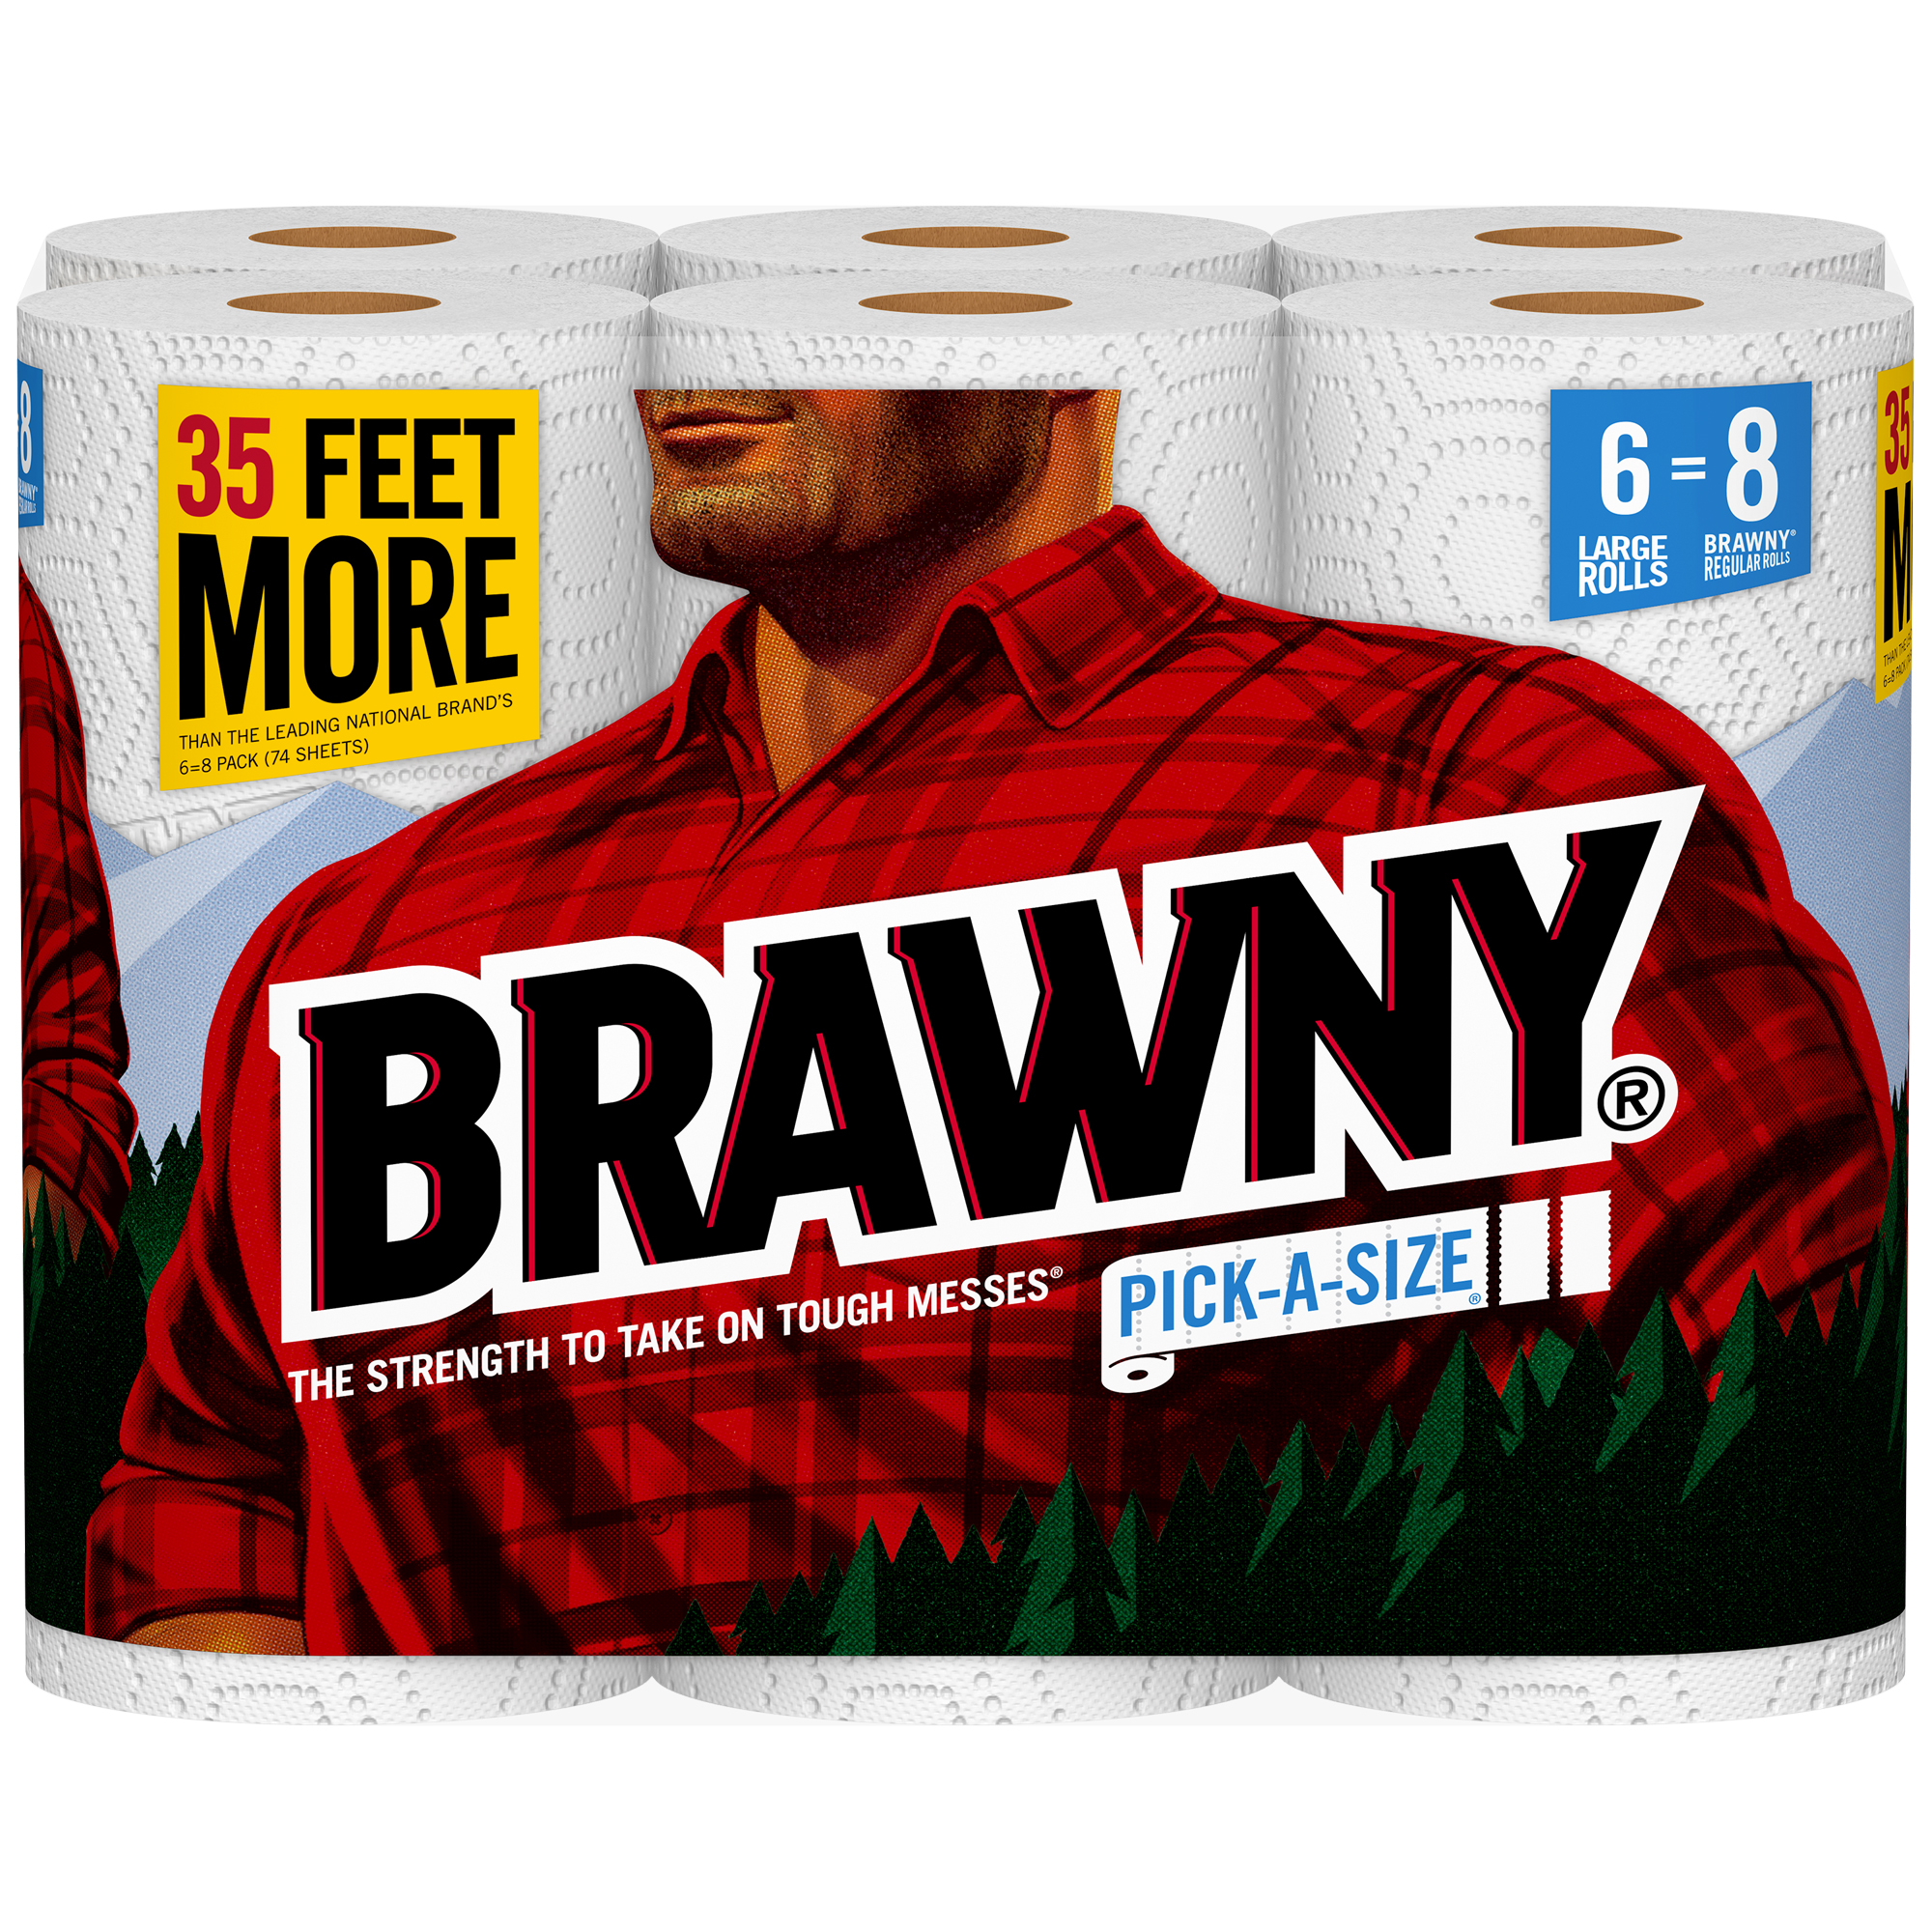 "Brawny® Pick-A-Size® 2-Ply Paper Towels, 5 9/10"" x 11"", White, 87 Sheets Per Roll, Pack Of 6 Rolls"